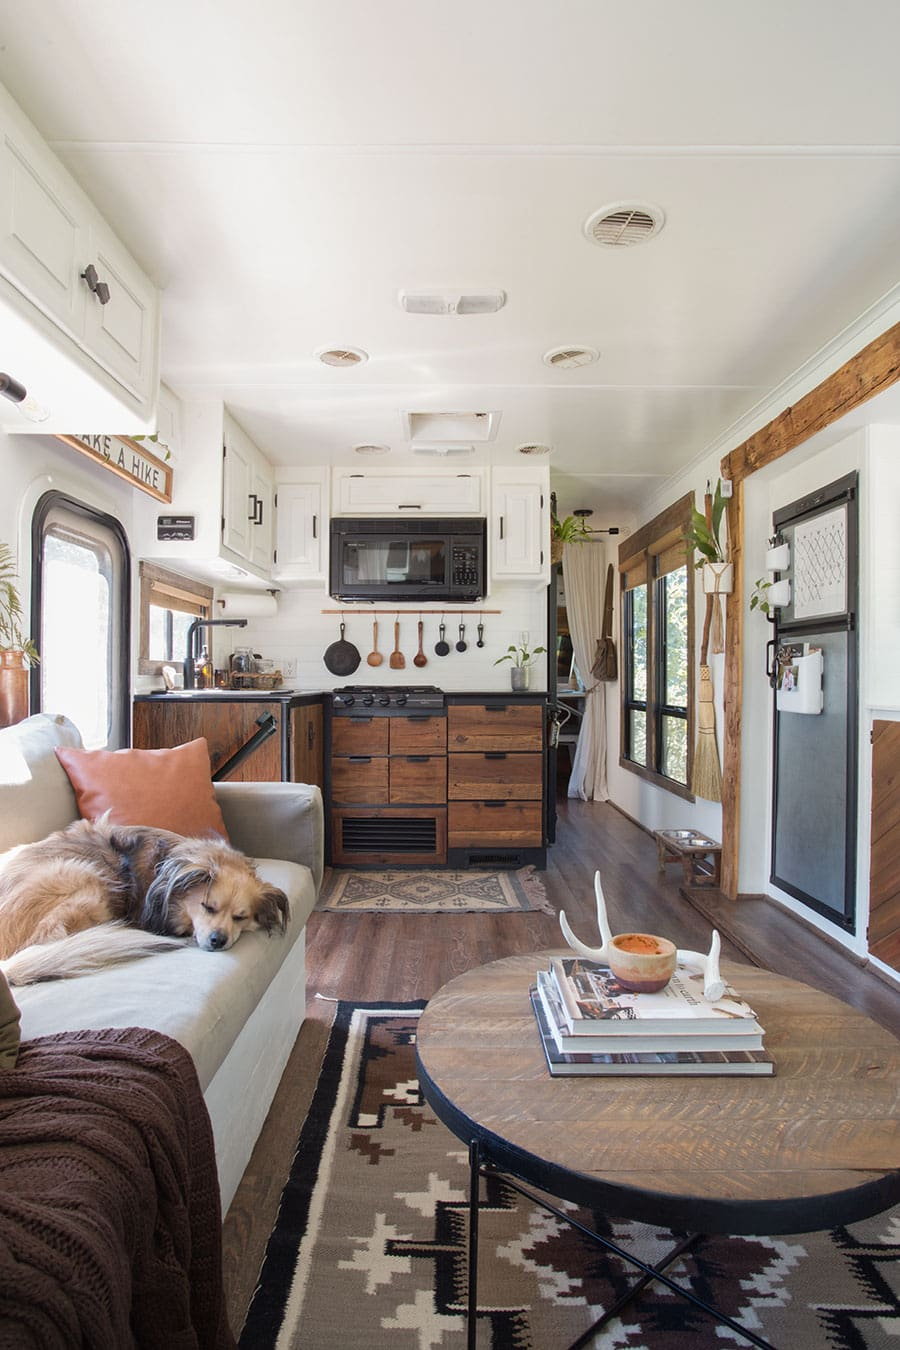 Our RV Renovation Photo Gallery